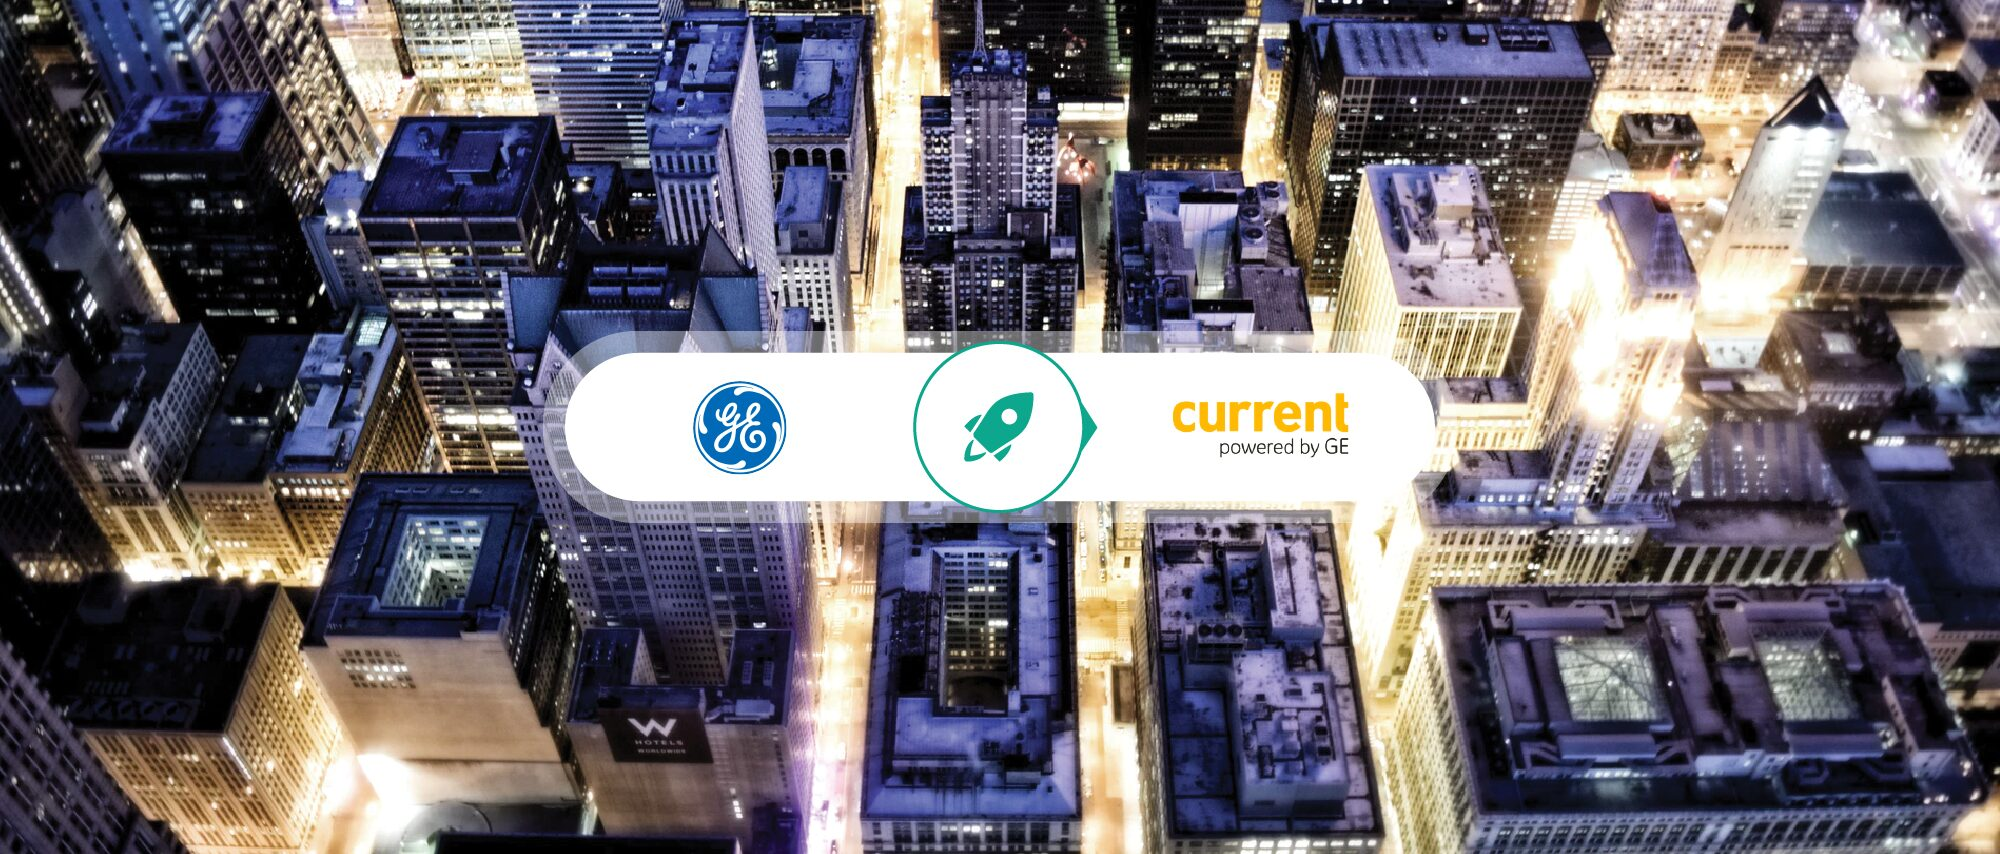 GE Current: Transforming the way we use energy through digital innovation